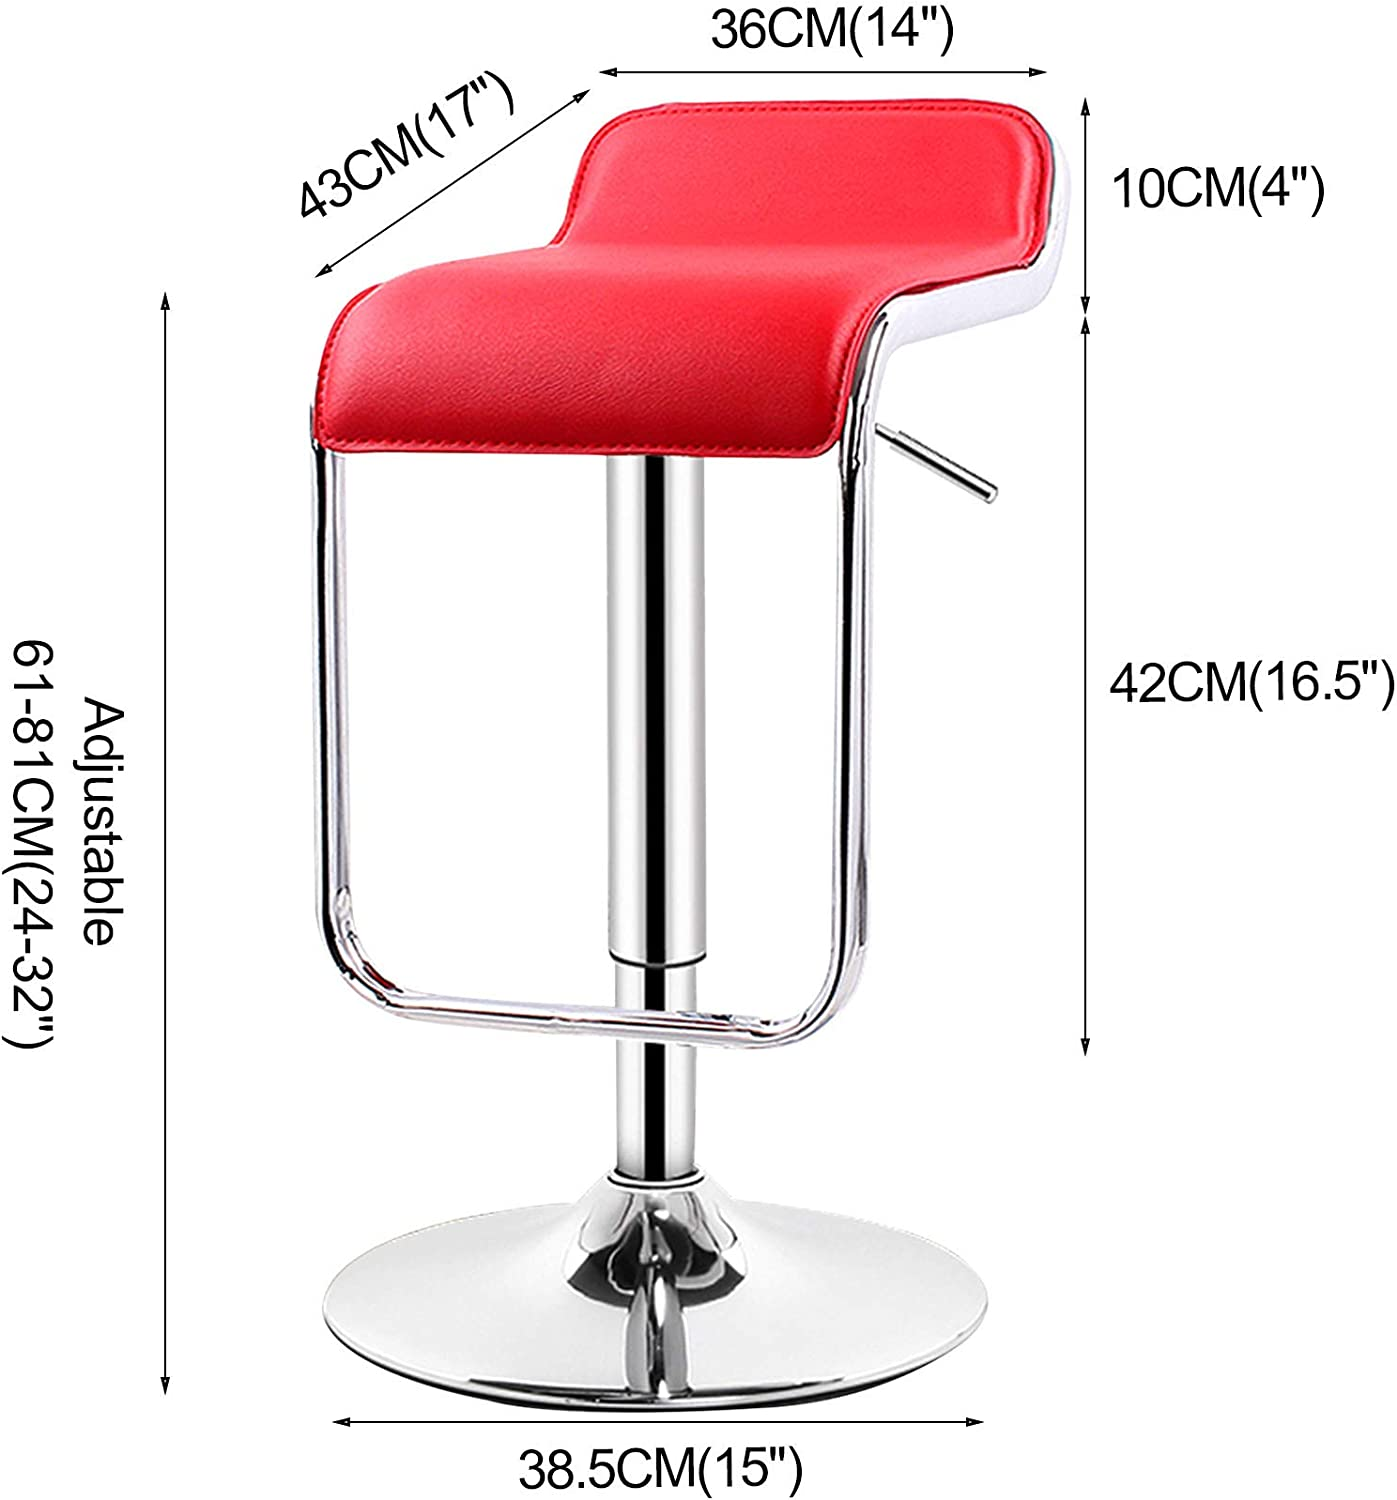 LIYANNG Modern PU Leather Adjustable Bar Stools, Counter Height Swivel Stool with Back, for Home Kitchen Bar Leisure Front Desk, Lifting 24-32